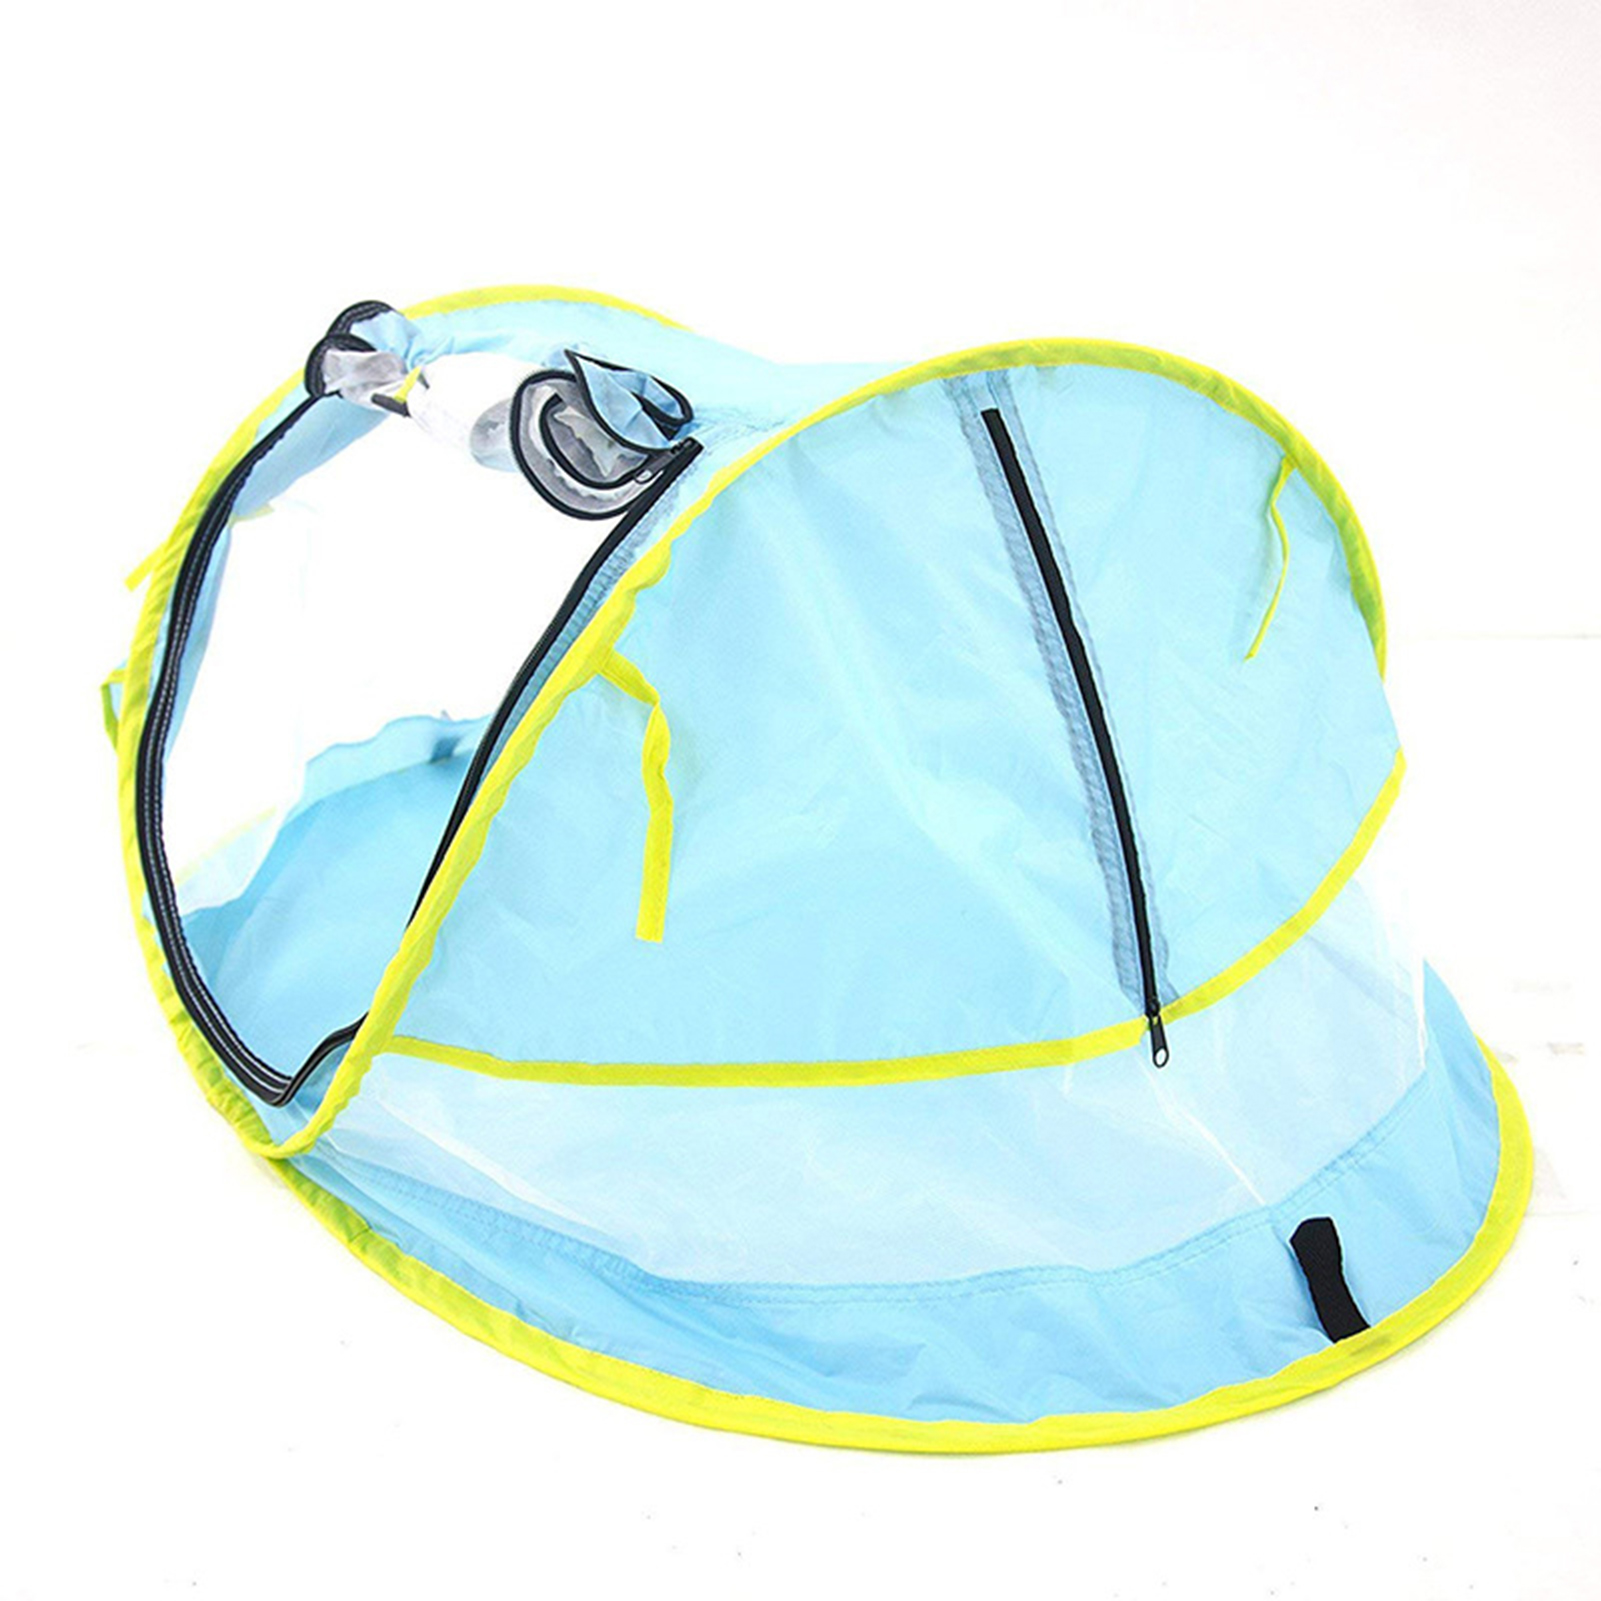 2020 Portable Pop Up Baby Beach Tent UPF 50+ Sun Shelter Infant Mosquito Net for Baby Travel Bed with 2 Pegs Lightweight